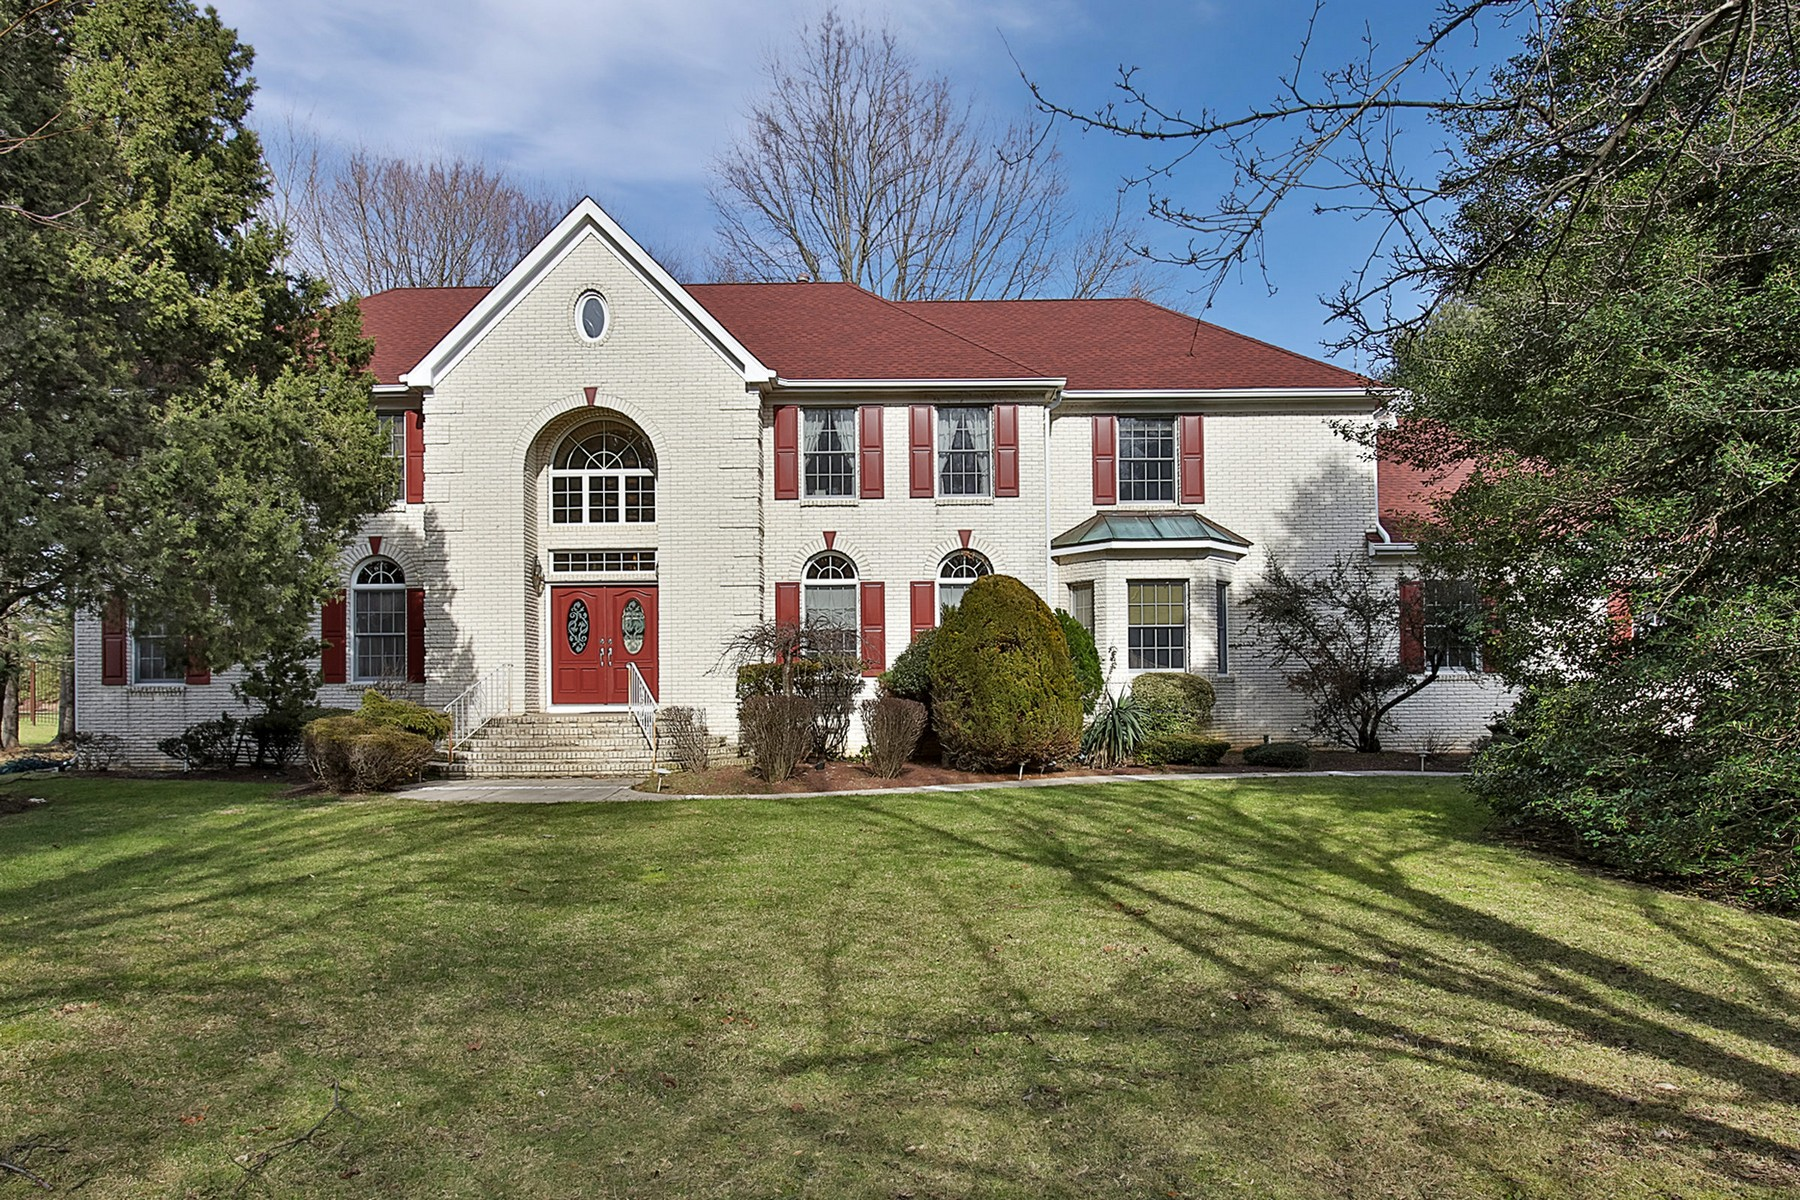 Single Family Home for Sale at Welcome Home 86 N Mitchell Pl Little Silver, New Jersey, 07739 United States